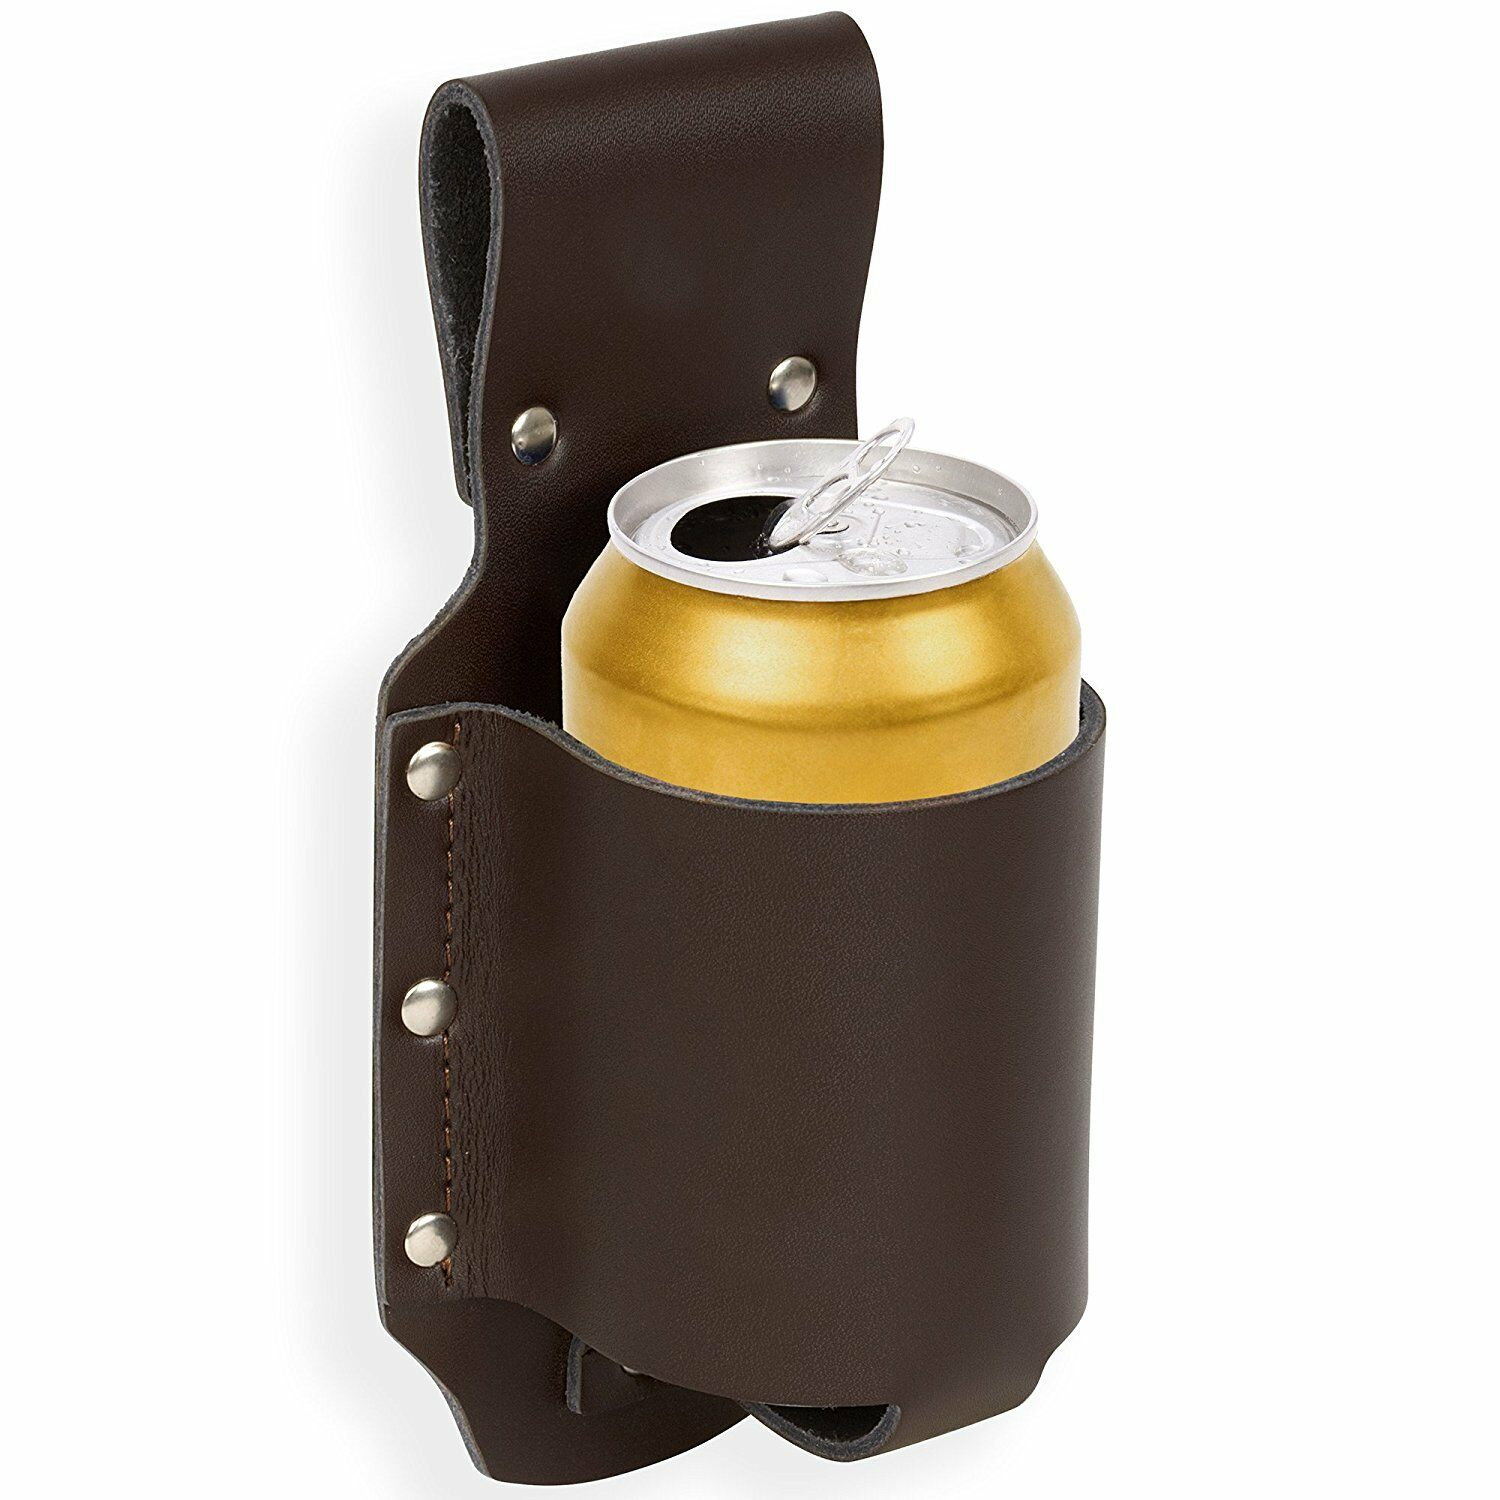 Western Brown Leather Can or Bottle Holder with Belt Loop